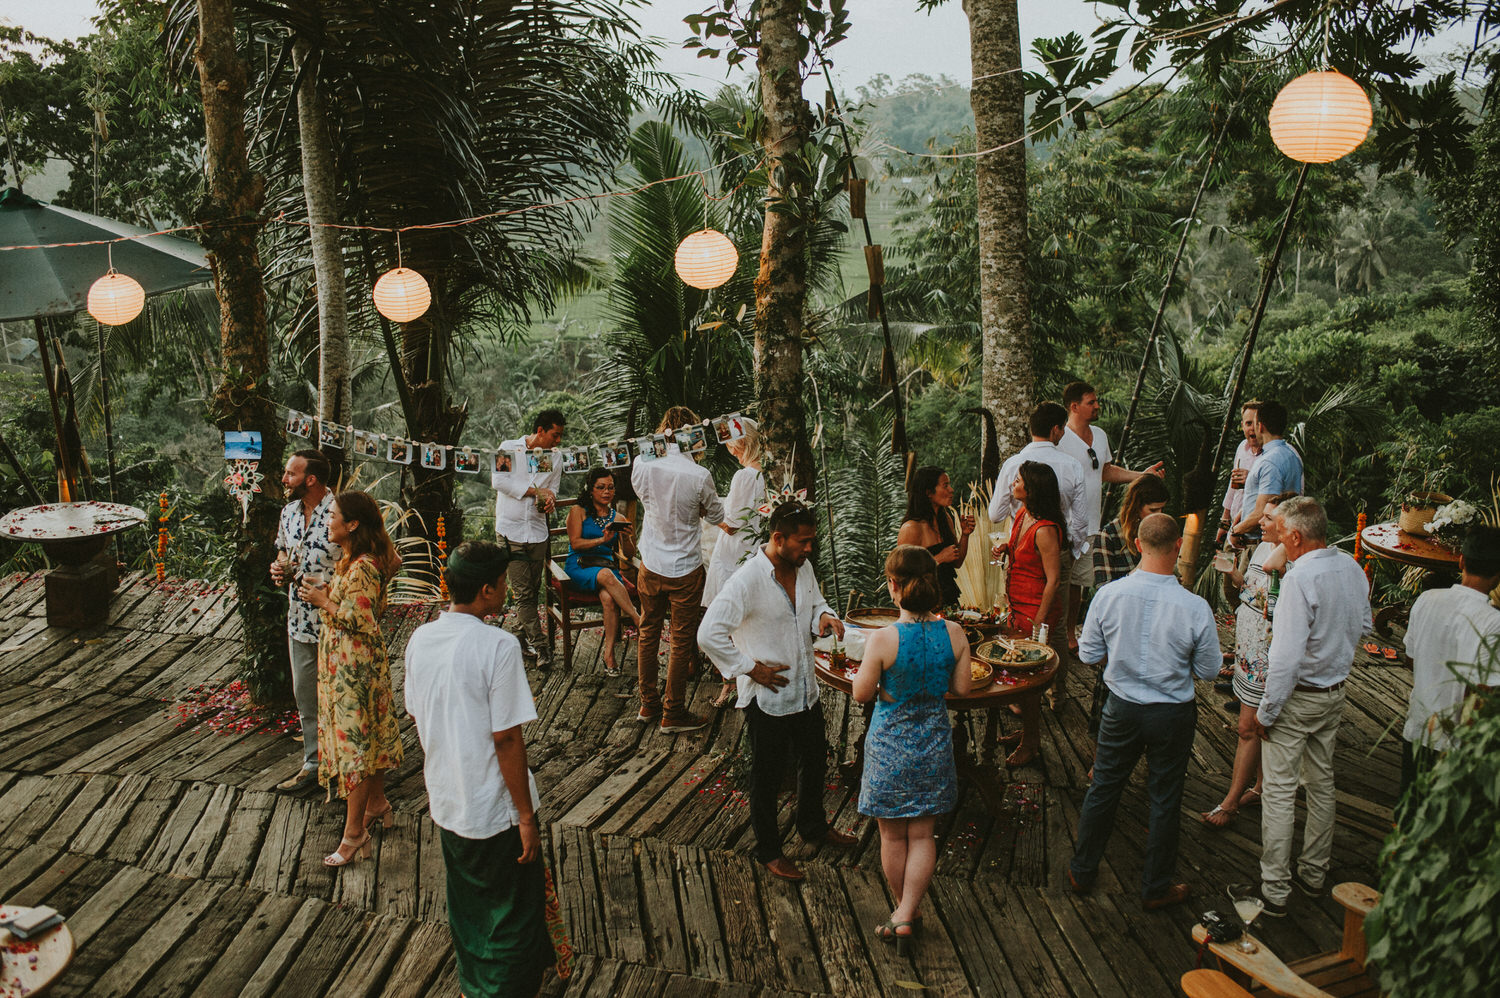 bali-wedding-ubud-wedding-wedding-destination-diktatphotography-kadek-artayasa-elaine-and-glenn-110